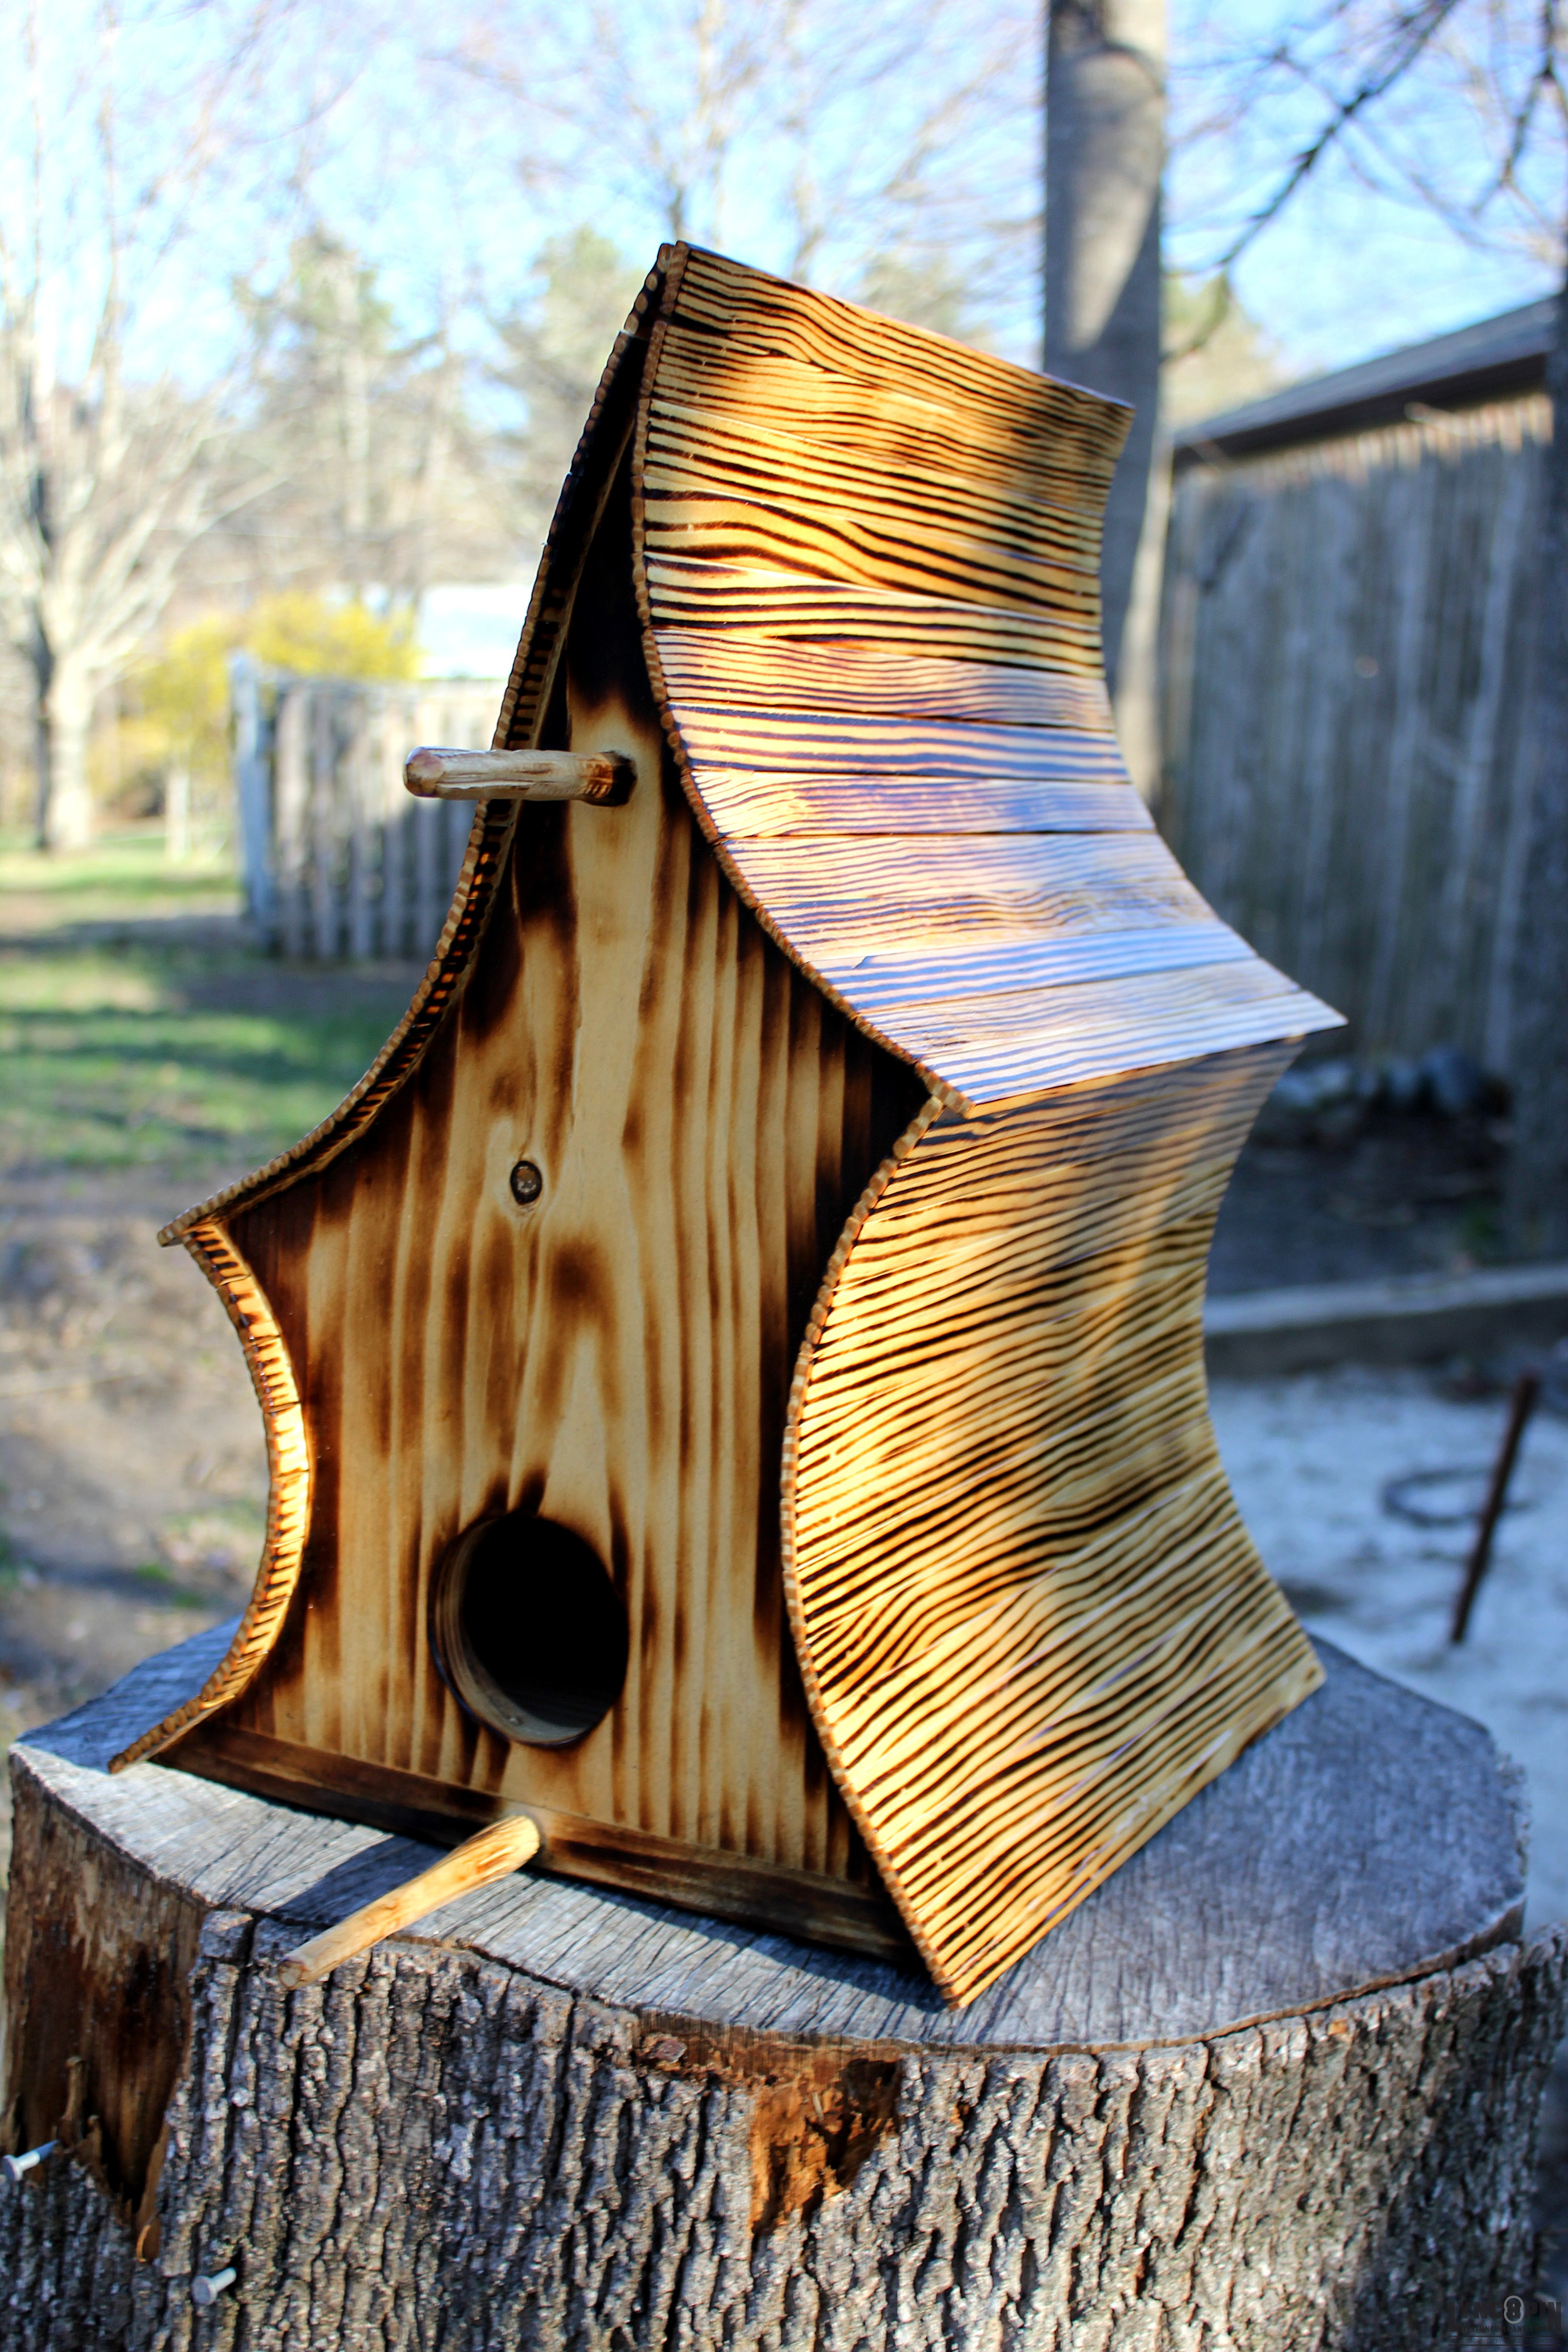 Decorative Hand – Made Custom Yellow Southern Pine Birdhouse, Country, on western house plans, cedar ridge house plan, purple martin house building plans, red-headed woodpecker house plans, cedar greenhouse plans, cedar storage plans, cedar fence plans, cedar wood, cedar table plans, bird feeder plans, cedar birdhouses and feeders, cedar lighthouse plans, cedar shelf plans, cedar bluebird house, cedar home plans, simple birdhouse plans, cedar barn plans, cedar furniture plans, cowboy cedar birdhouse plans, cedar bench plans,